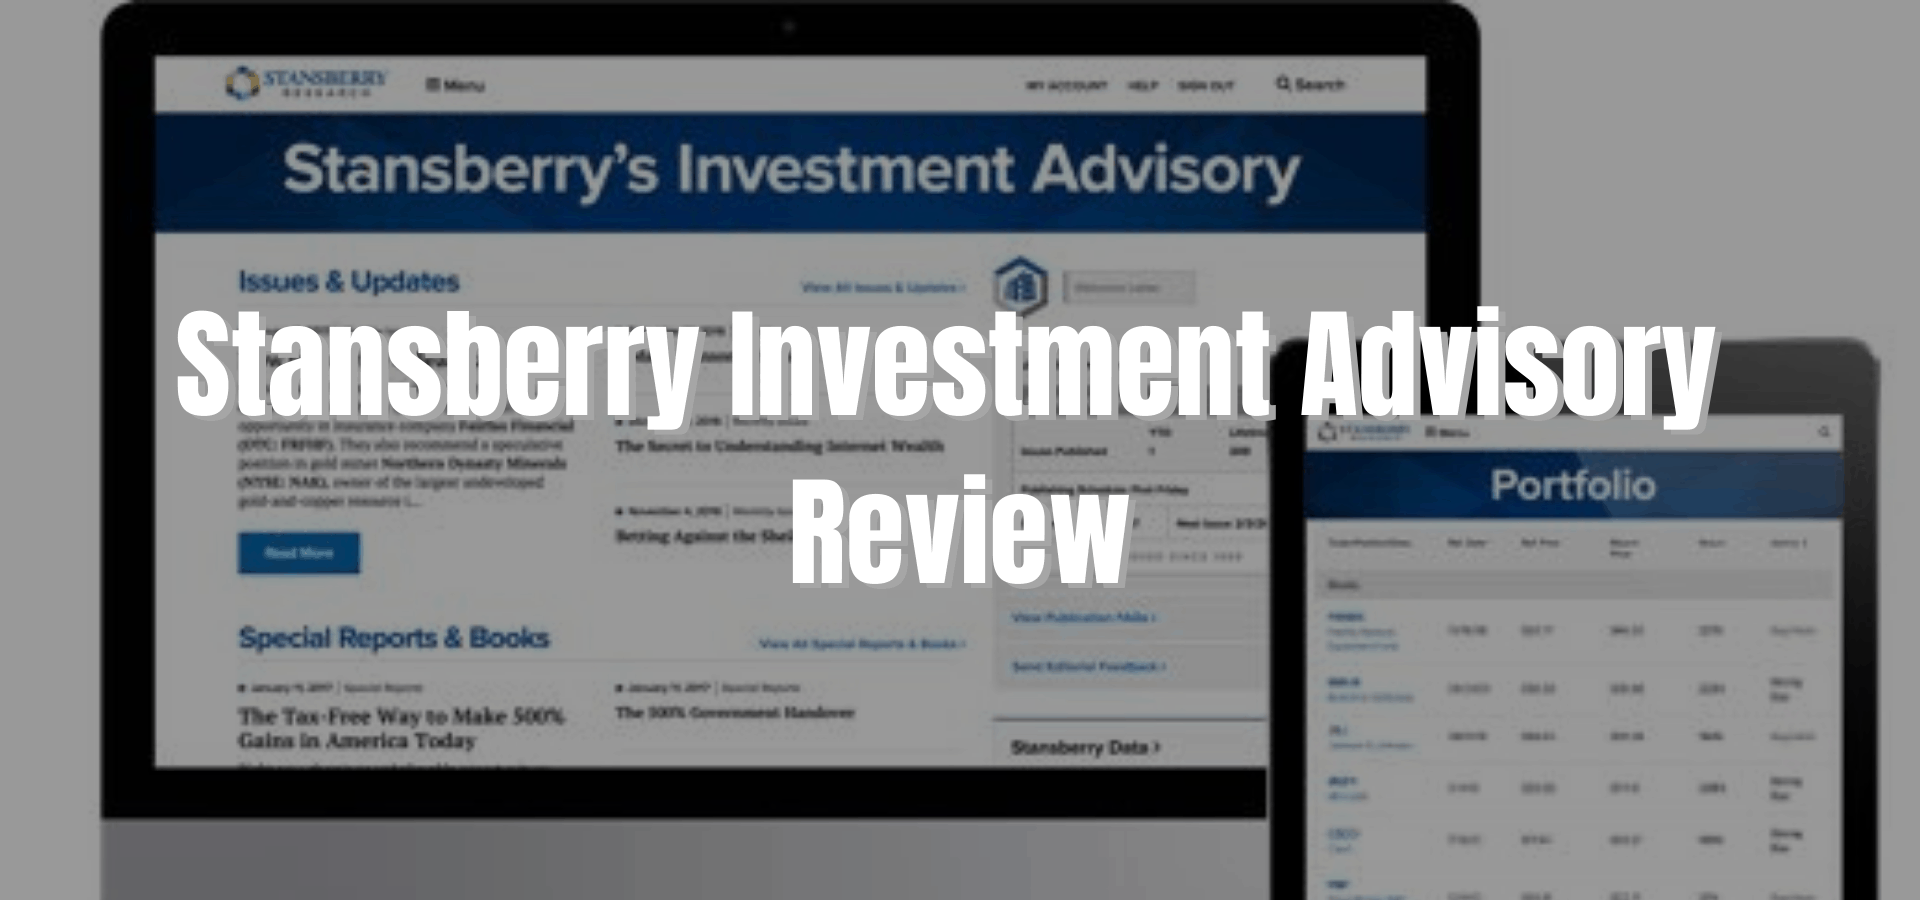 Stansberry Investment Advisory Review: Is Porter Stansberry a Scammer?